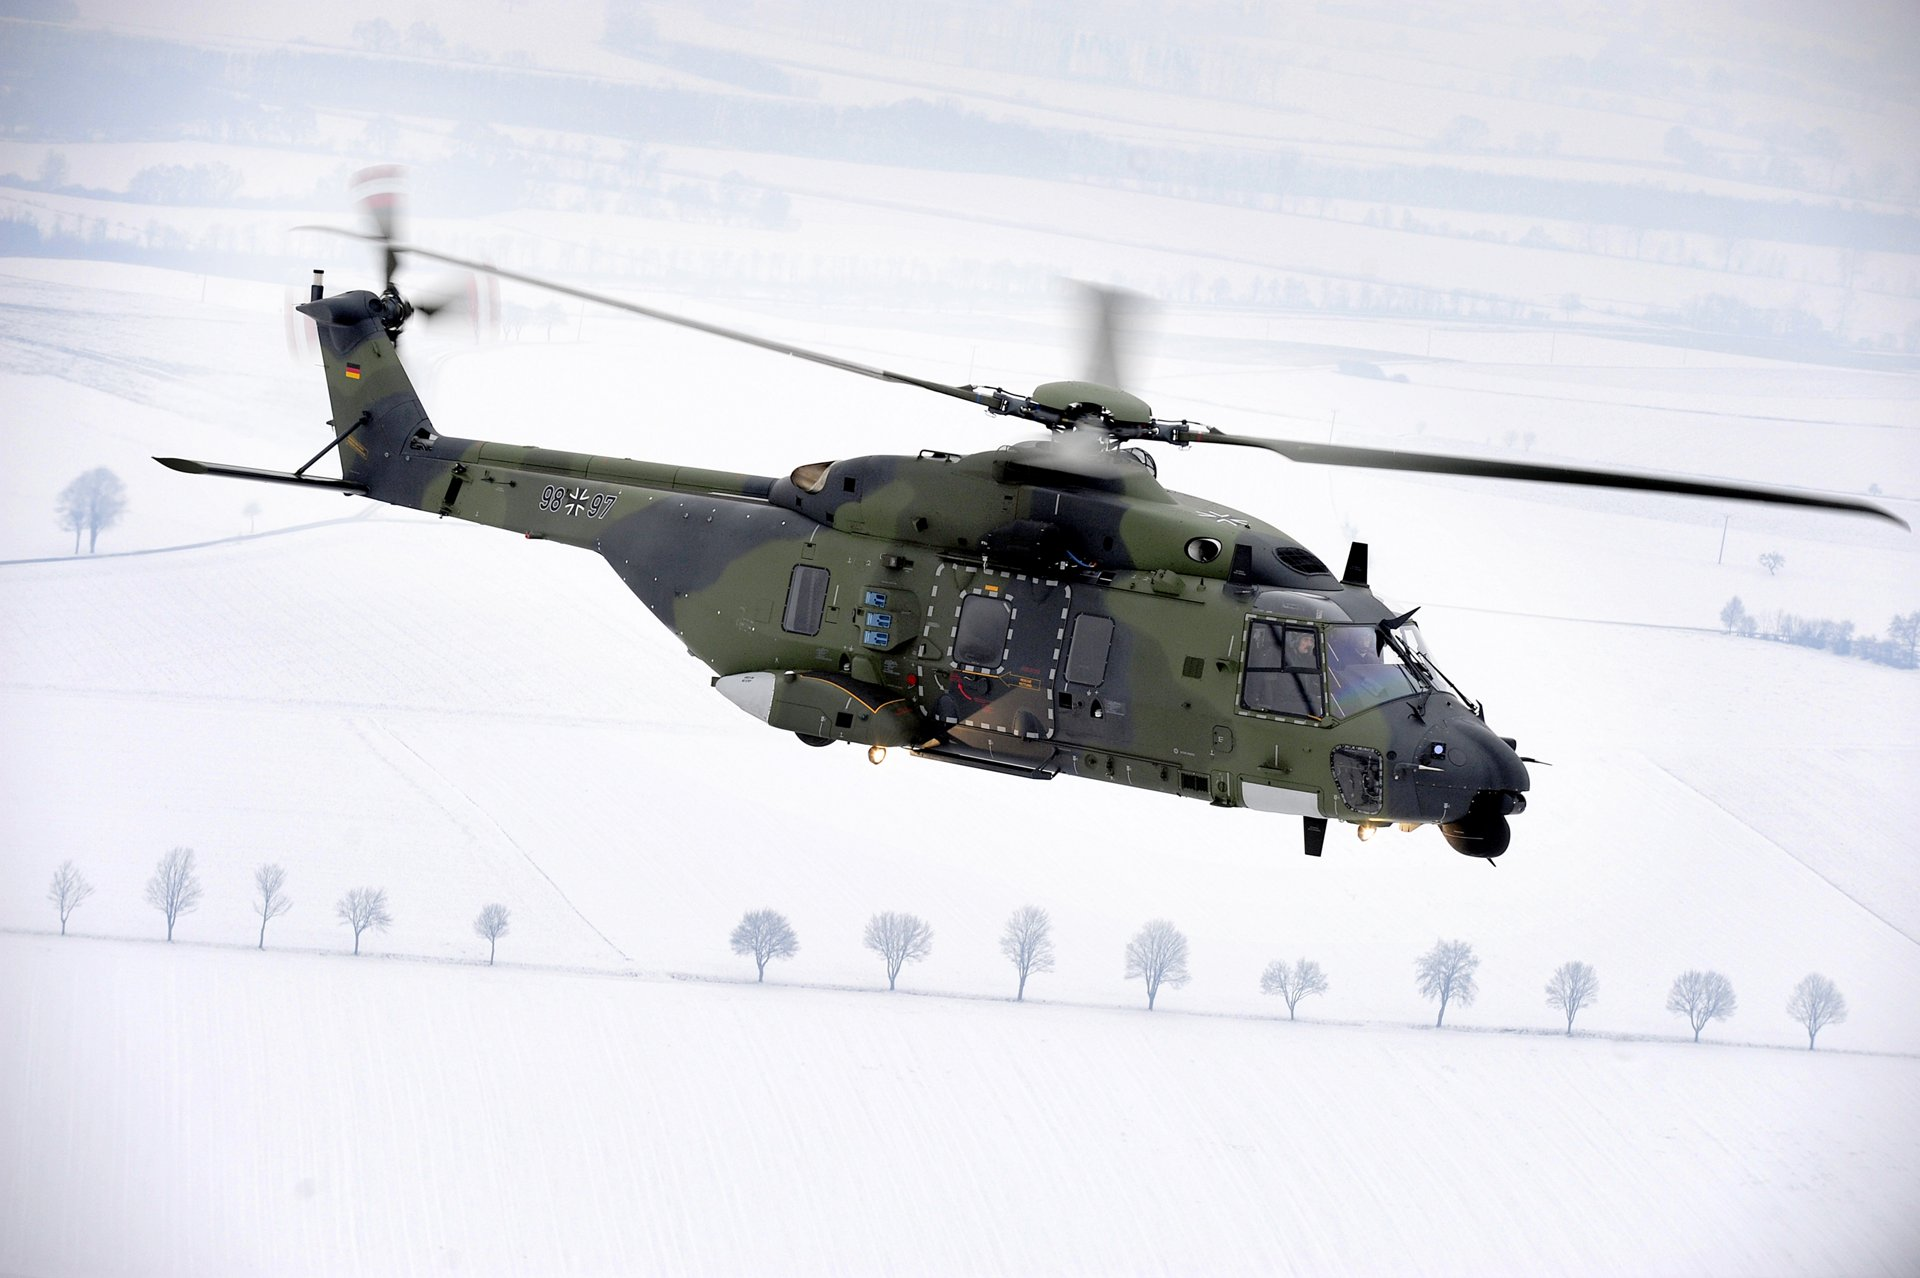 Airbus Helicopters refutes allegations from ZDF documentary on NH90